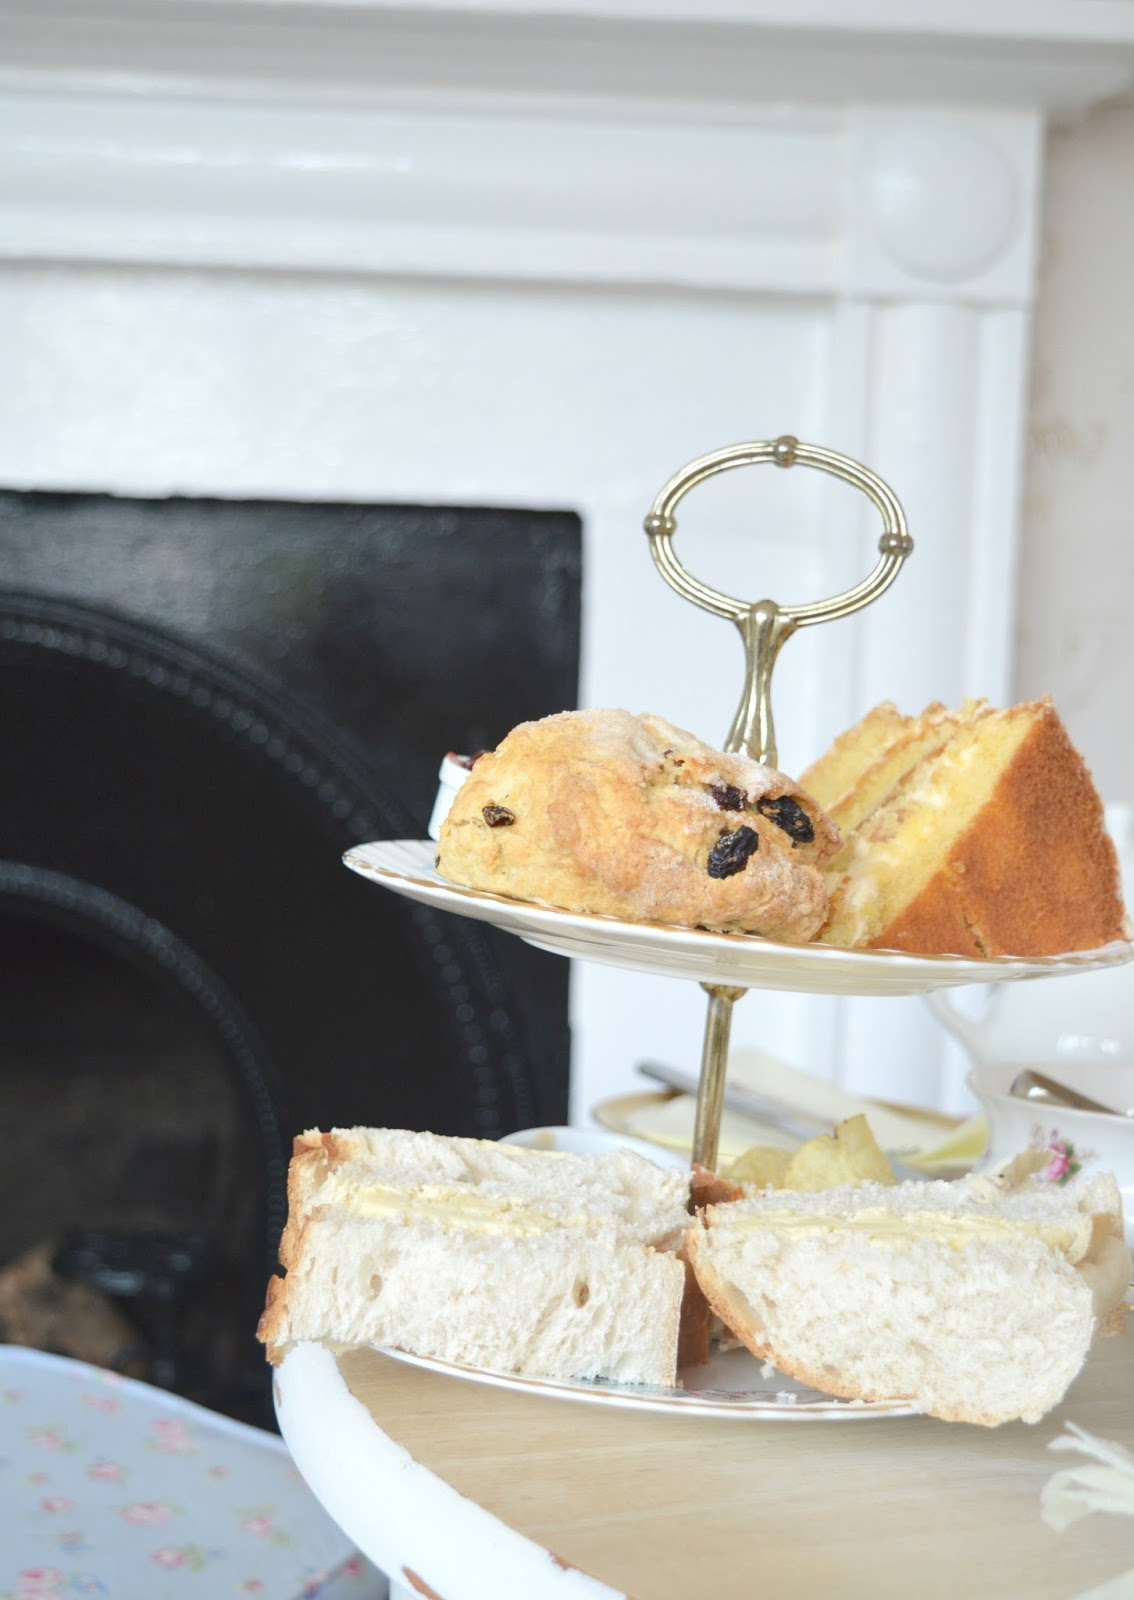 Tealicious, Durham - Afternoon Tea